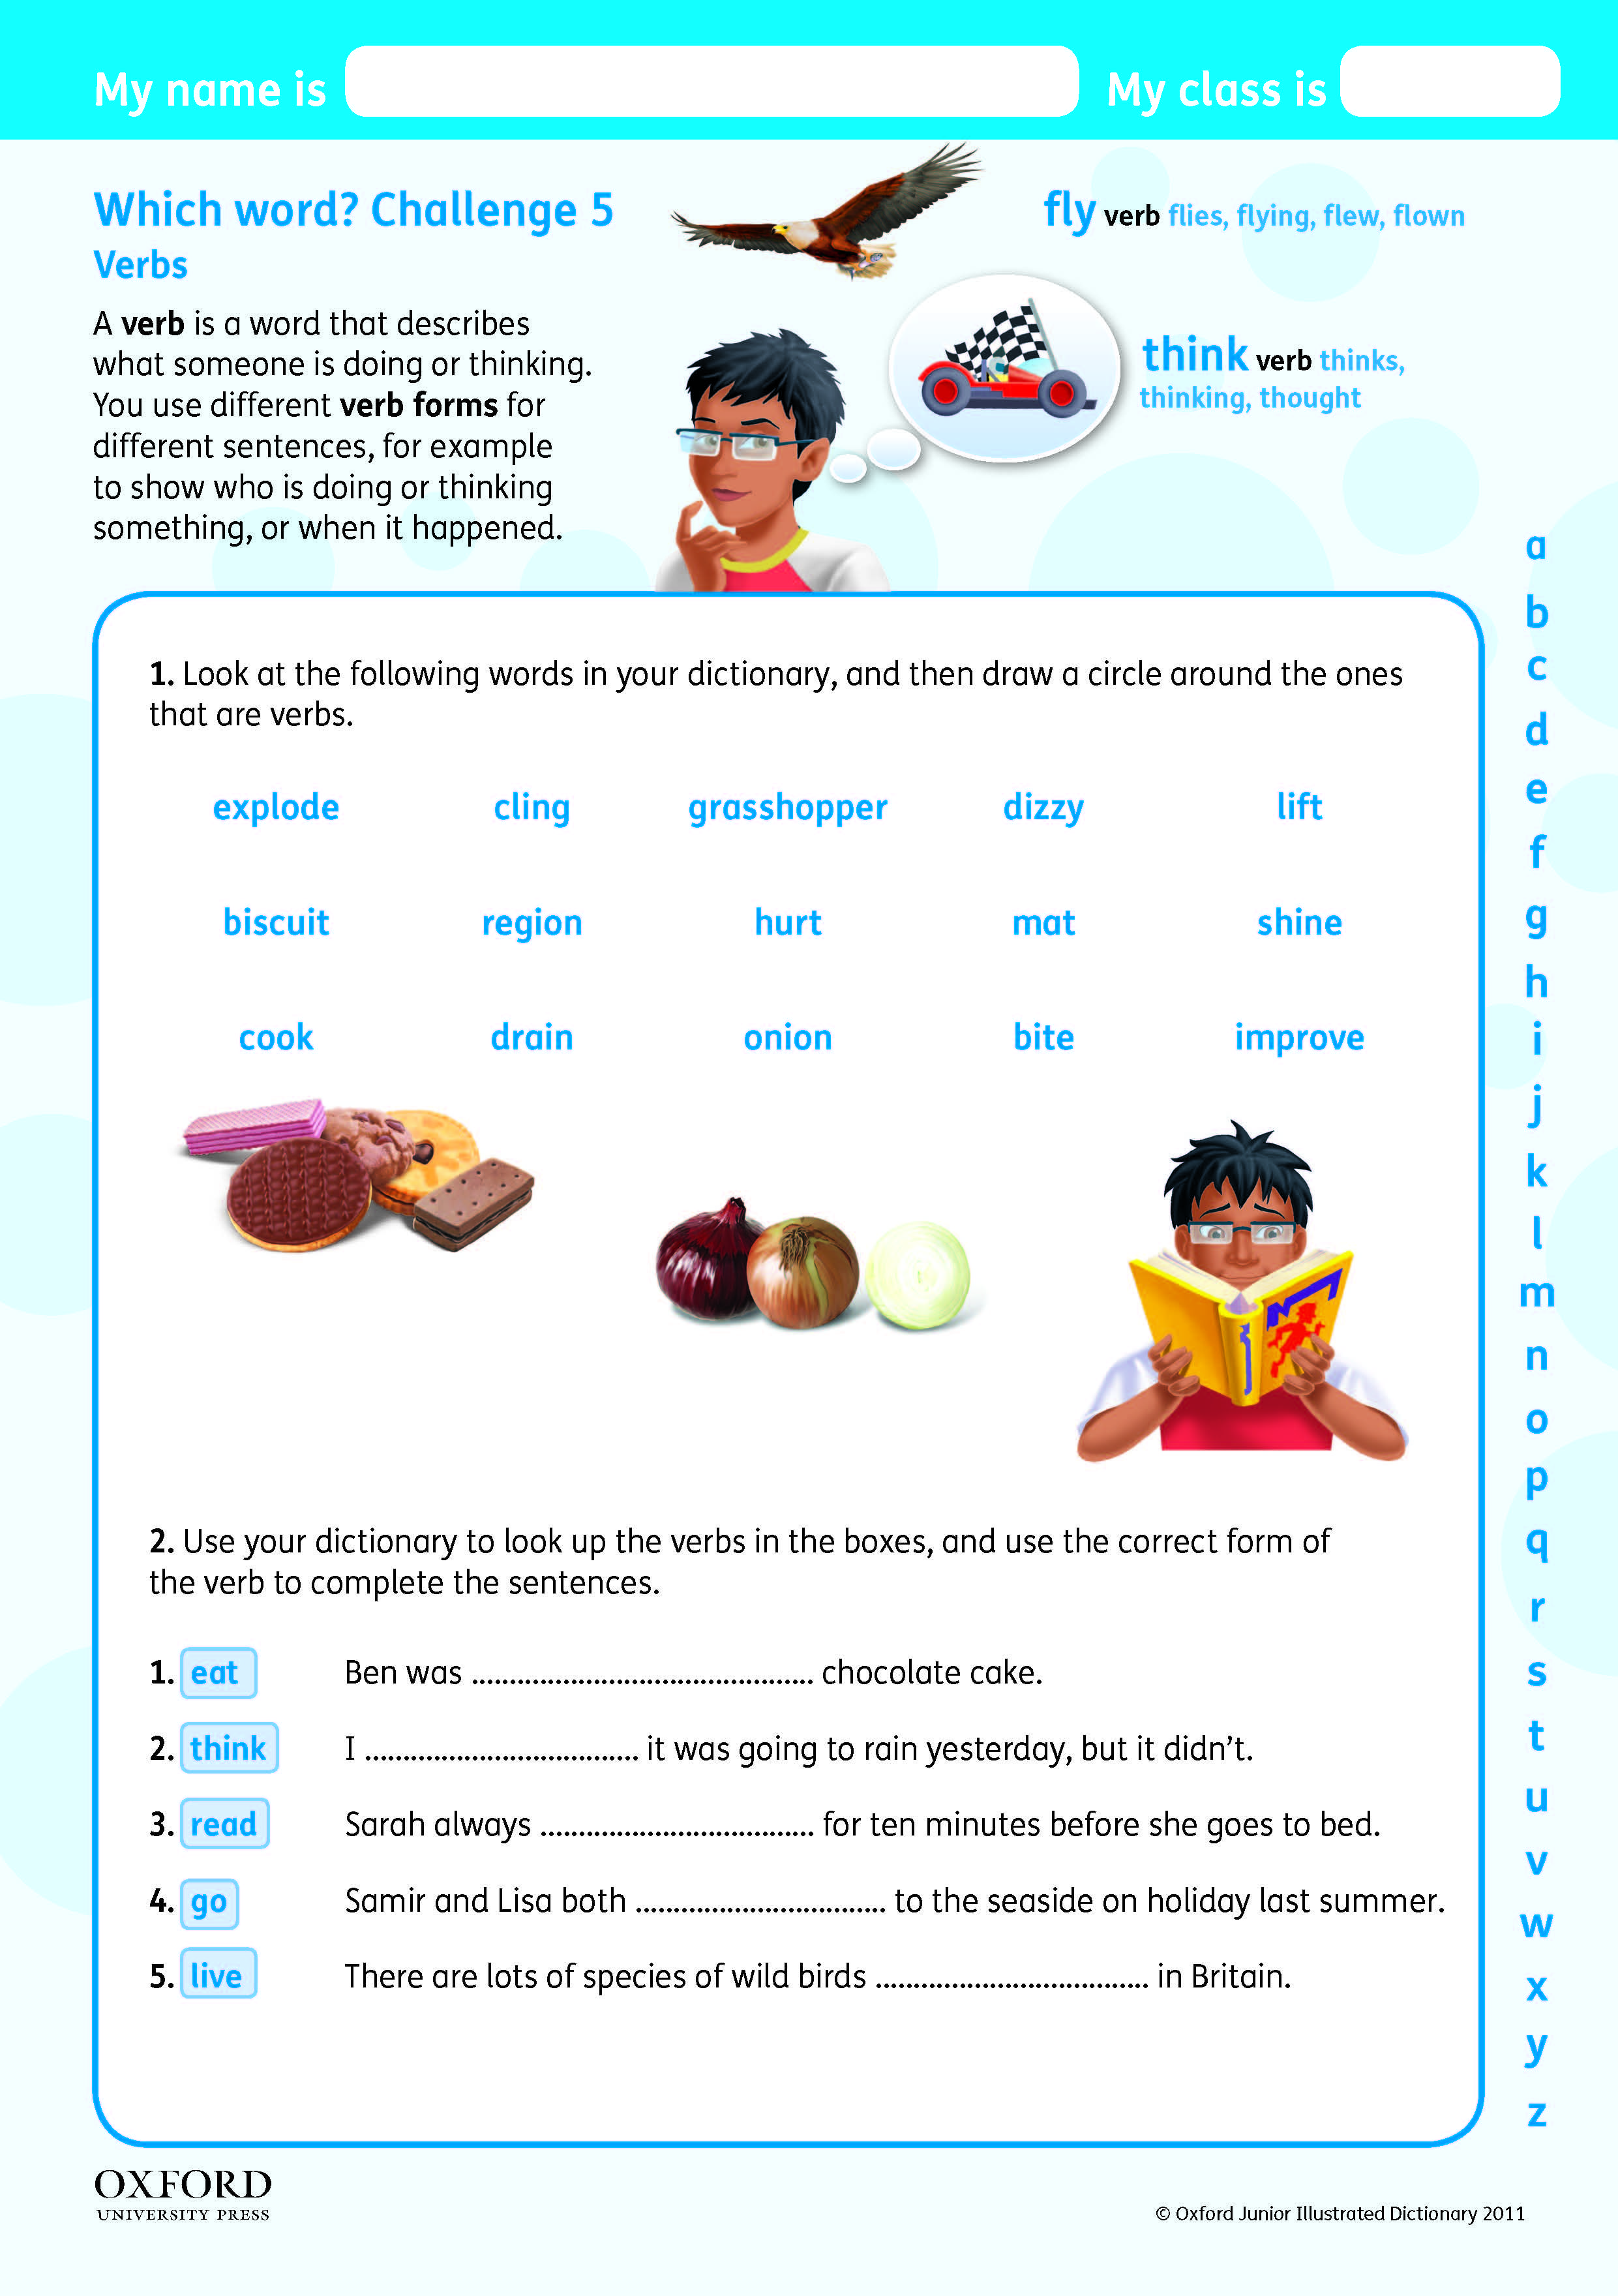 Download Your Free Oxford Junior Illustrated Dictionary Challenge Worksheet Teach Children About Verbs Alphabet Worksheets Preschool Word Challenge Dictionary [ 3520 x 2481 Pixel ]